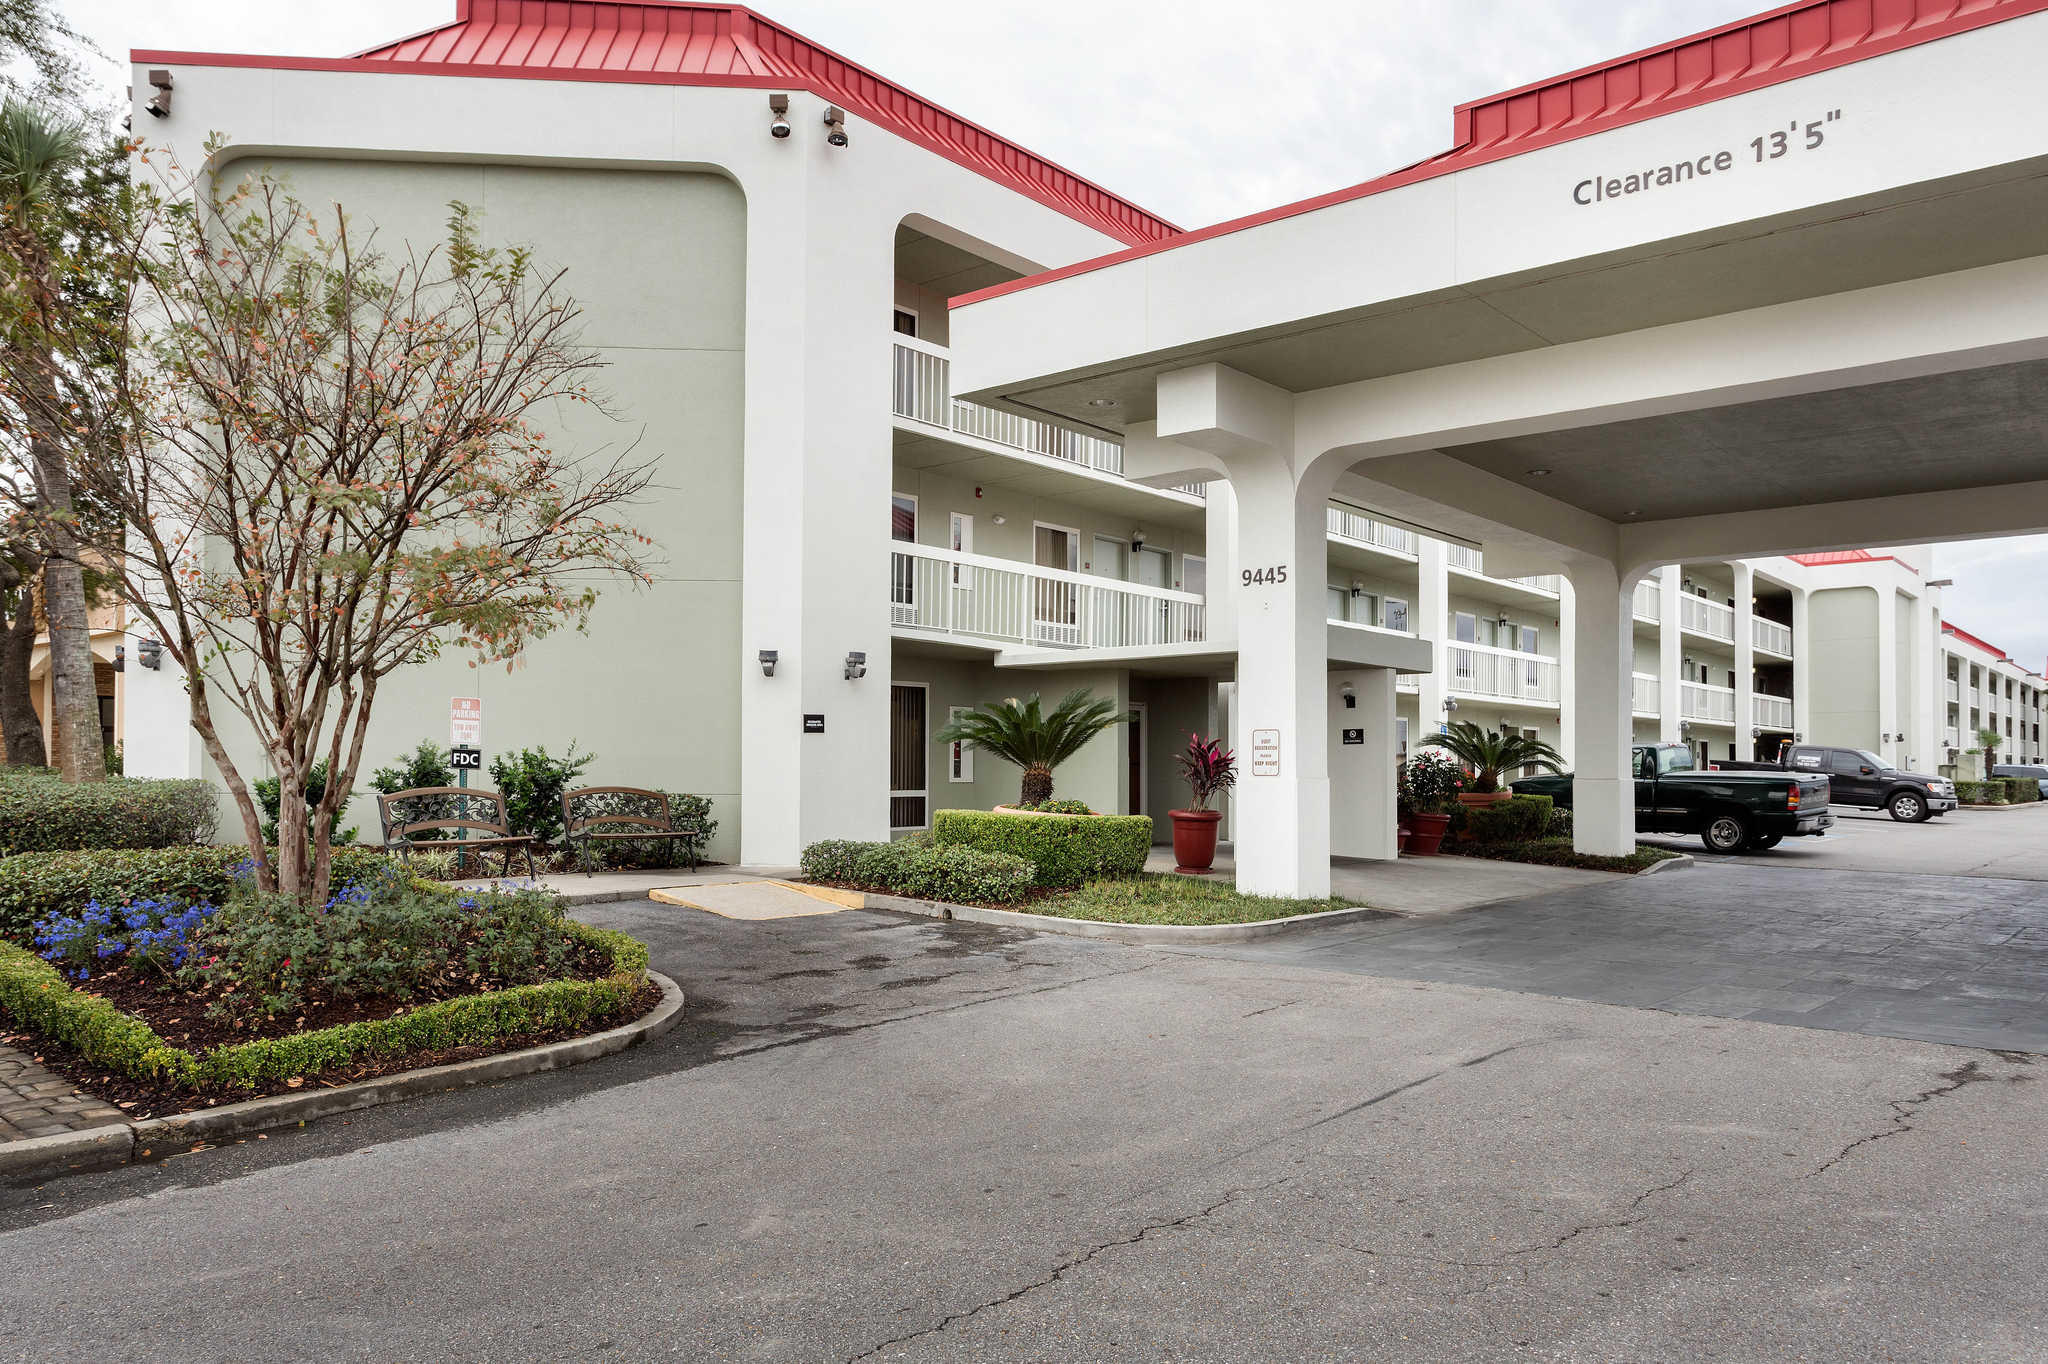 Clarion inn coupons near me in gulfport 8coupons for Hotels 8 near me